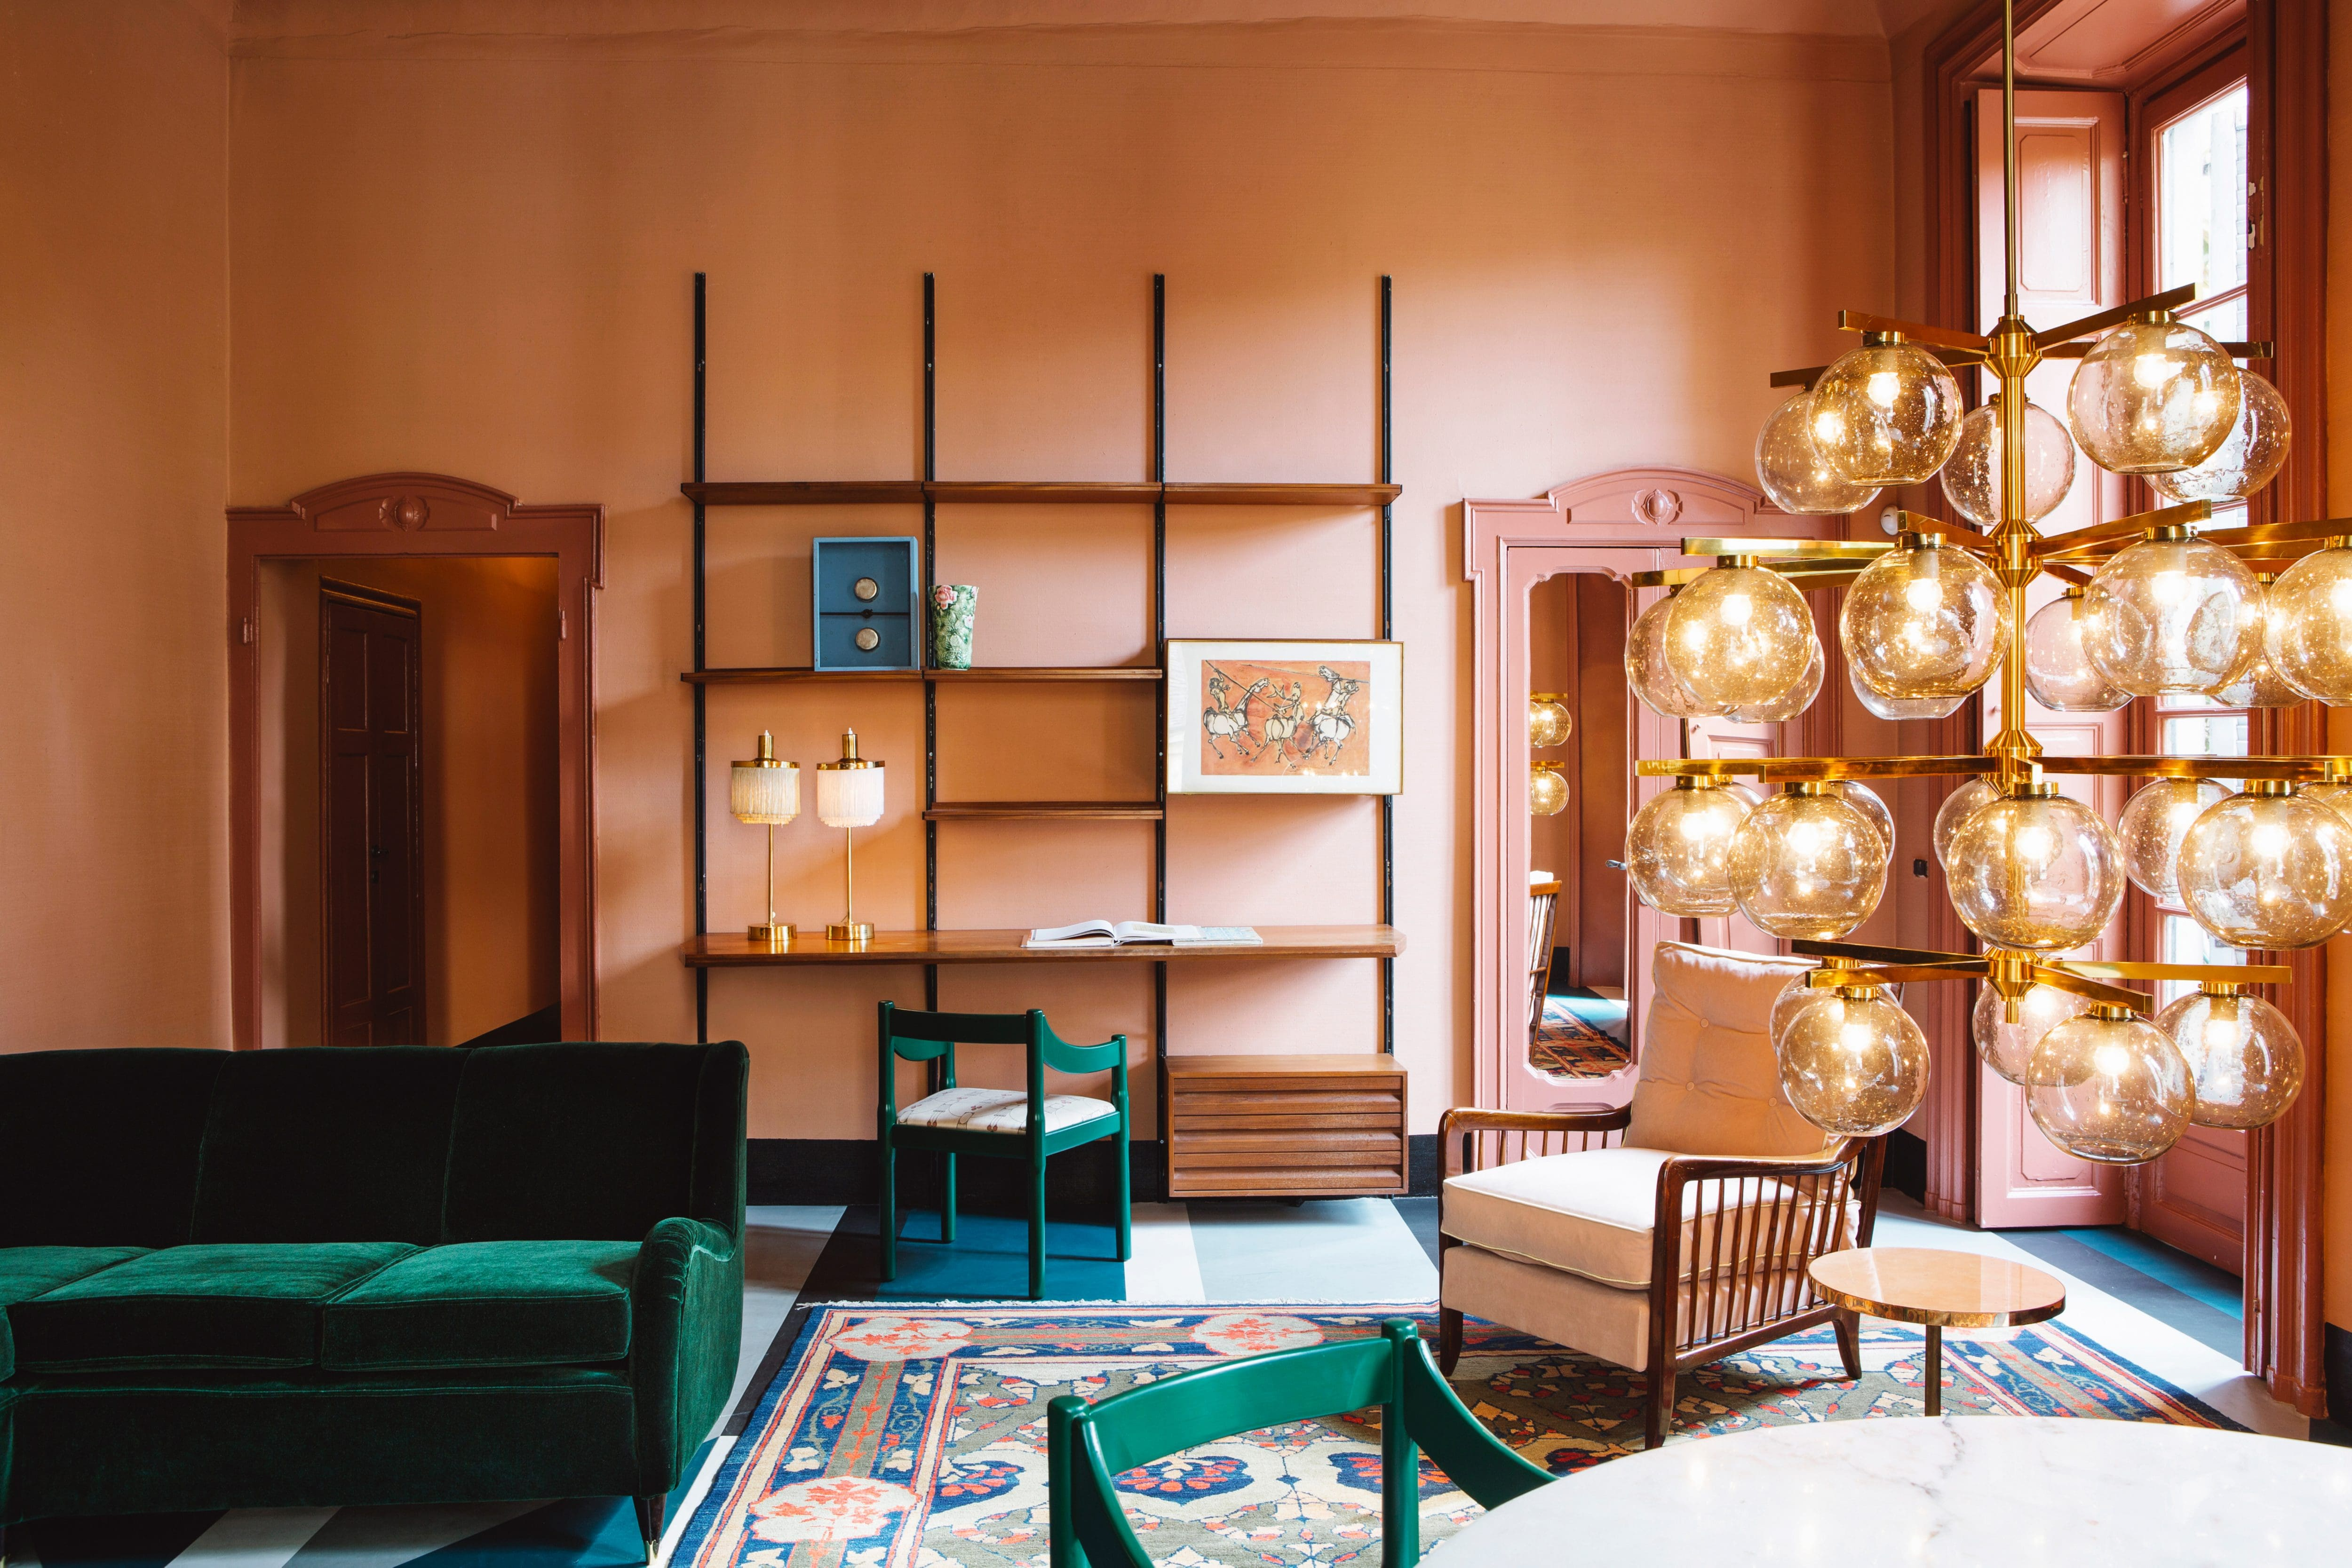 The Brera District Is Full Of Design Stores, But Perhaps One Of The Most  Fabulous Is Dimore Gallery, Located In An 18th Century Palazzo Just Off A  Courtyard ...